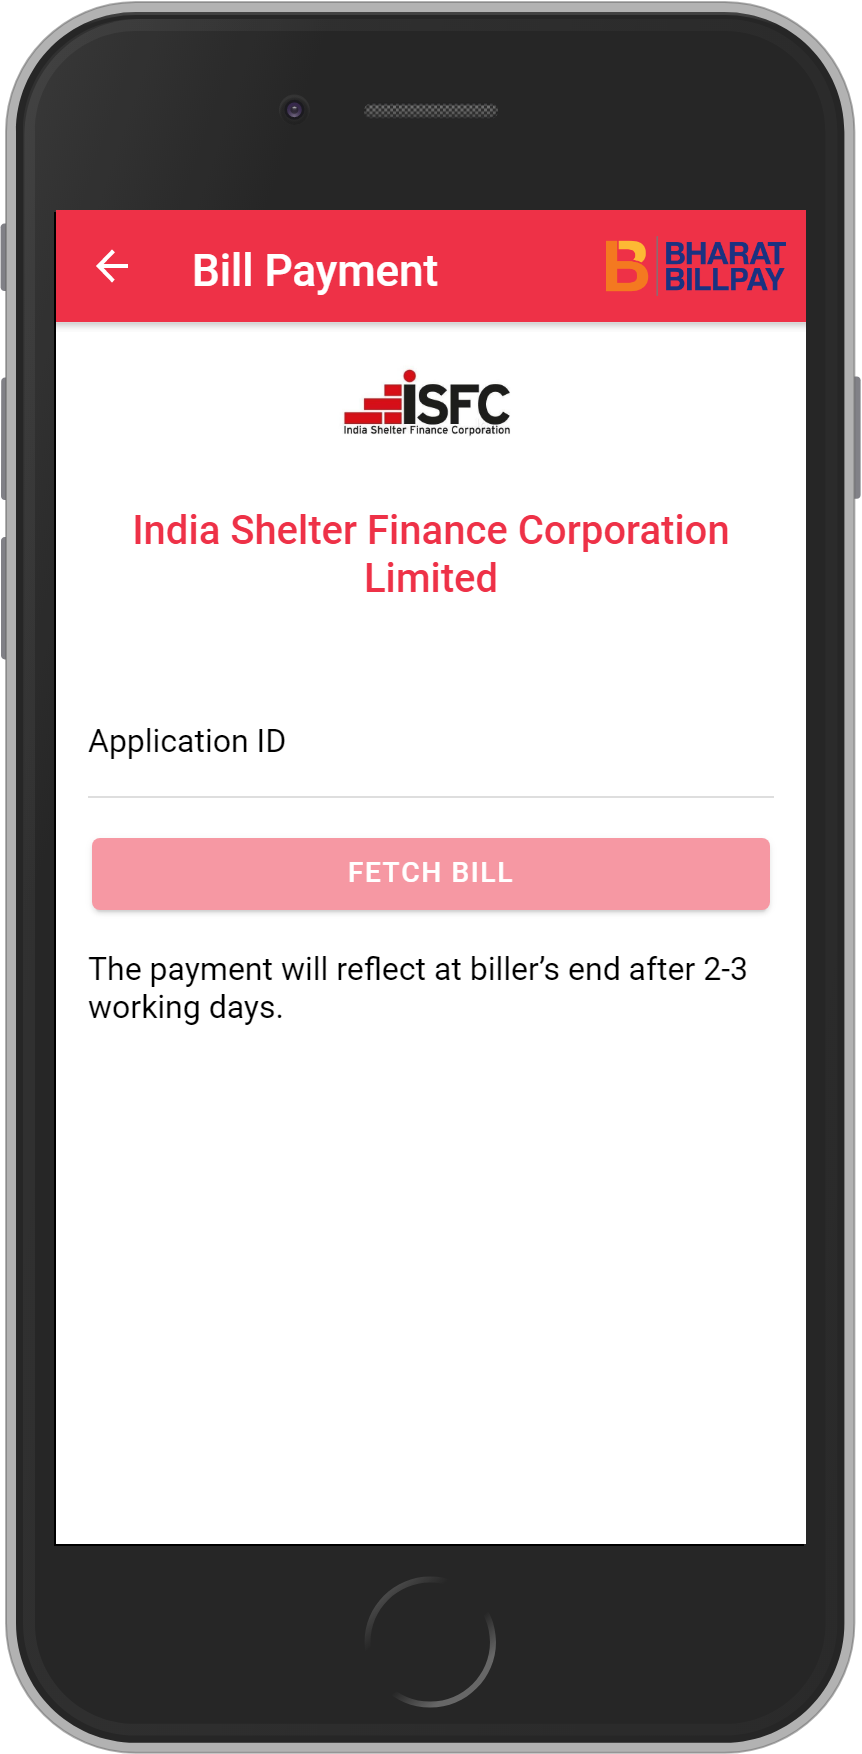 Get UNLIMITED <b>0.1%</b> CASHBACK on India Shelter Finance Corporation Limited Loan Payment.